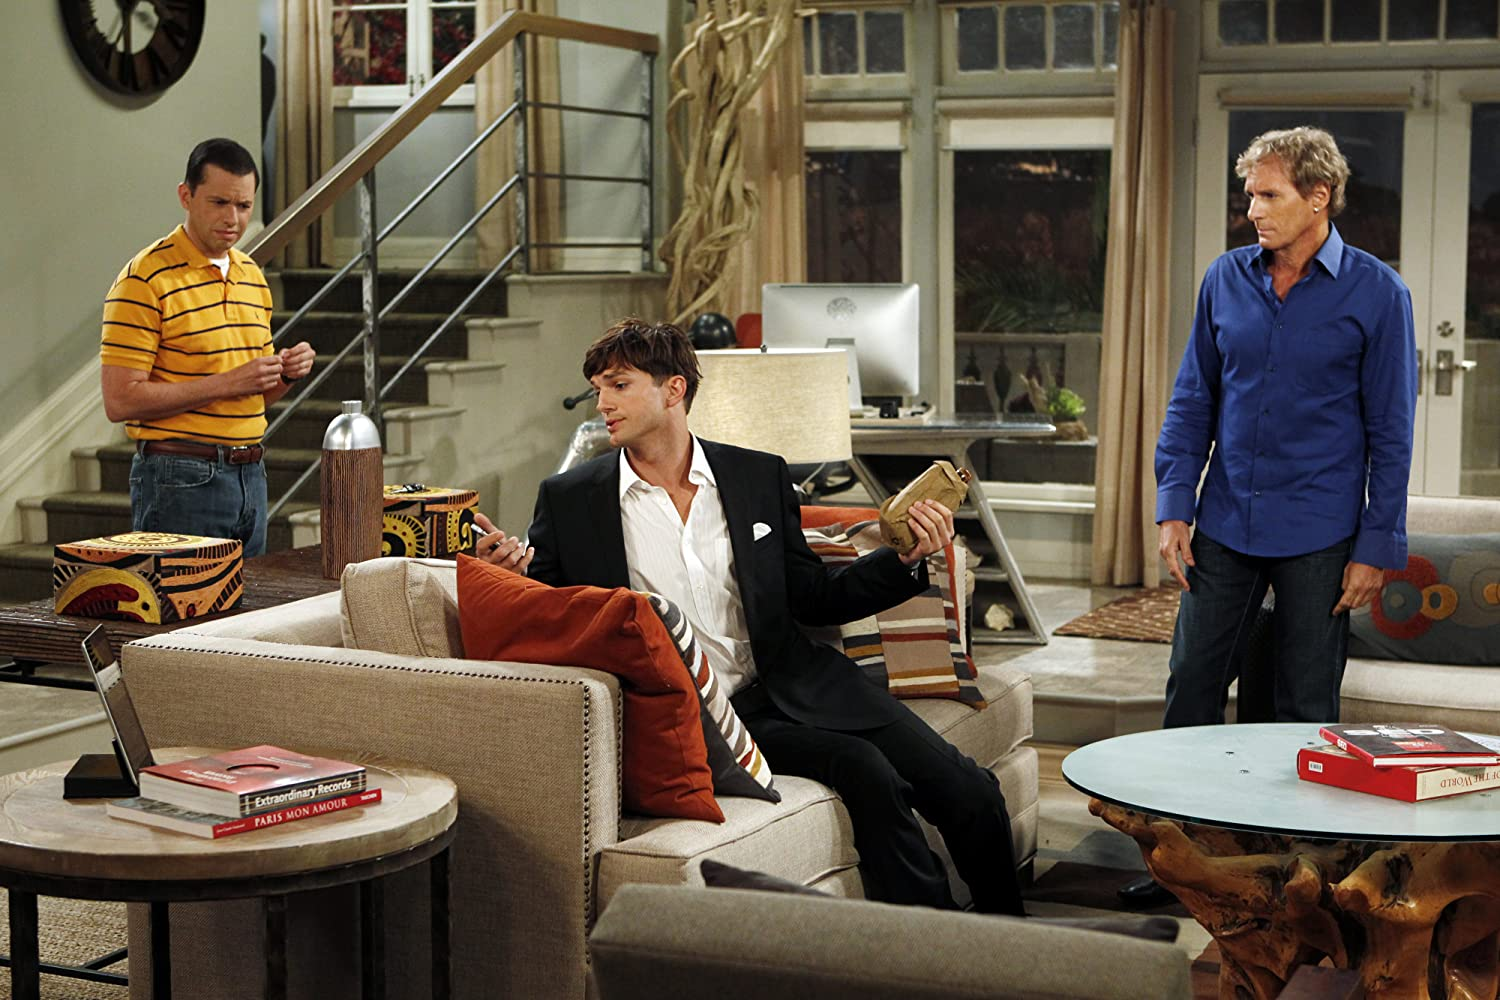 Jon Cryer, Ashton Kutcher, and Michael Bolton in Two and a Half Men (2003)